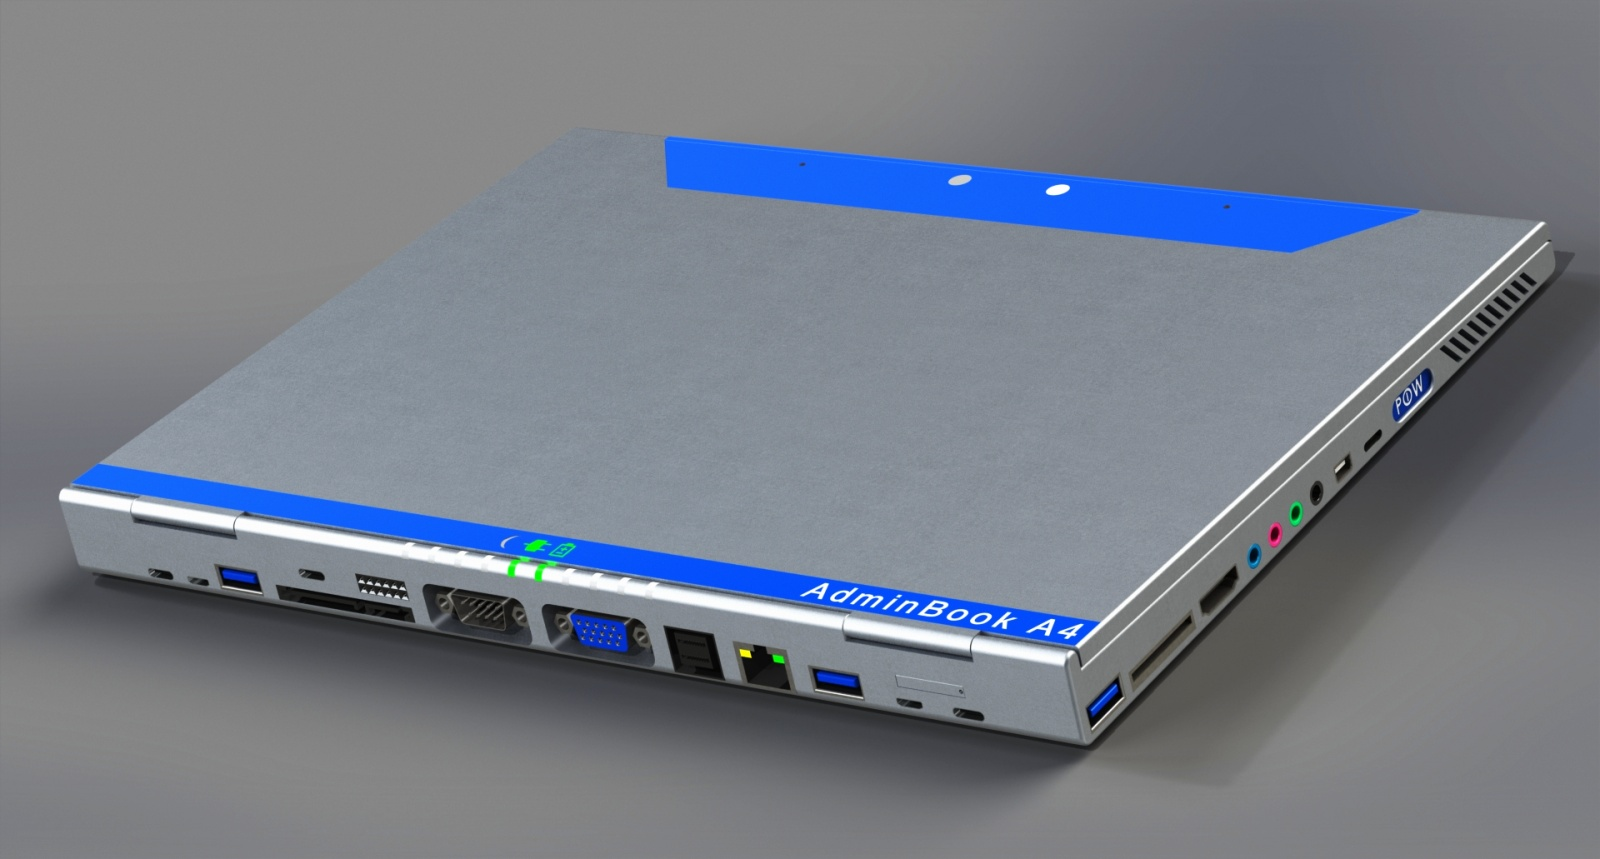 Adminbook A4 (back view)